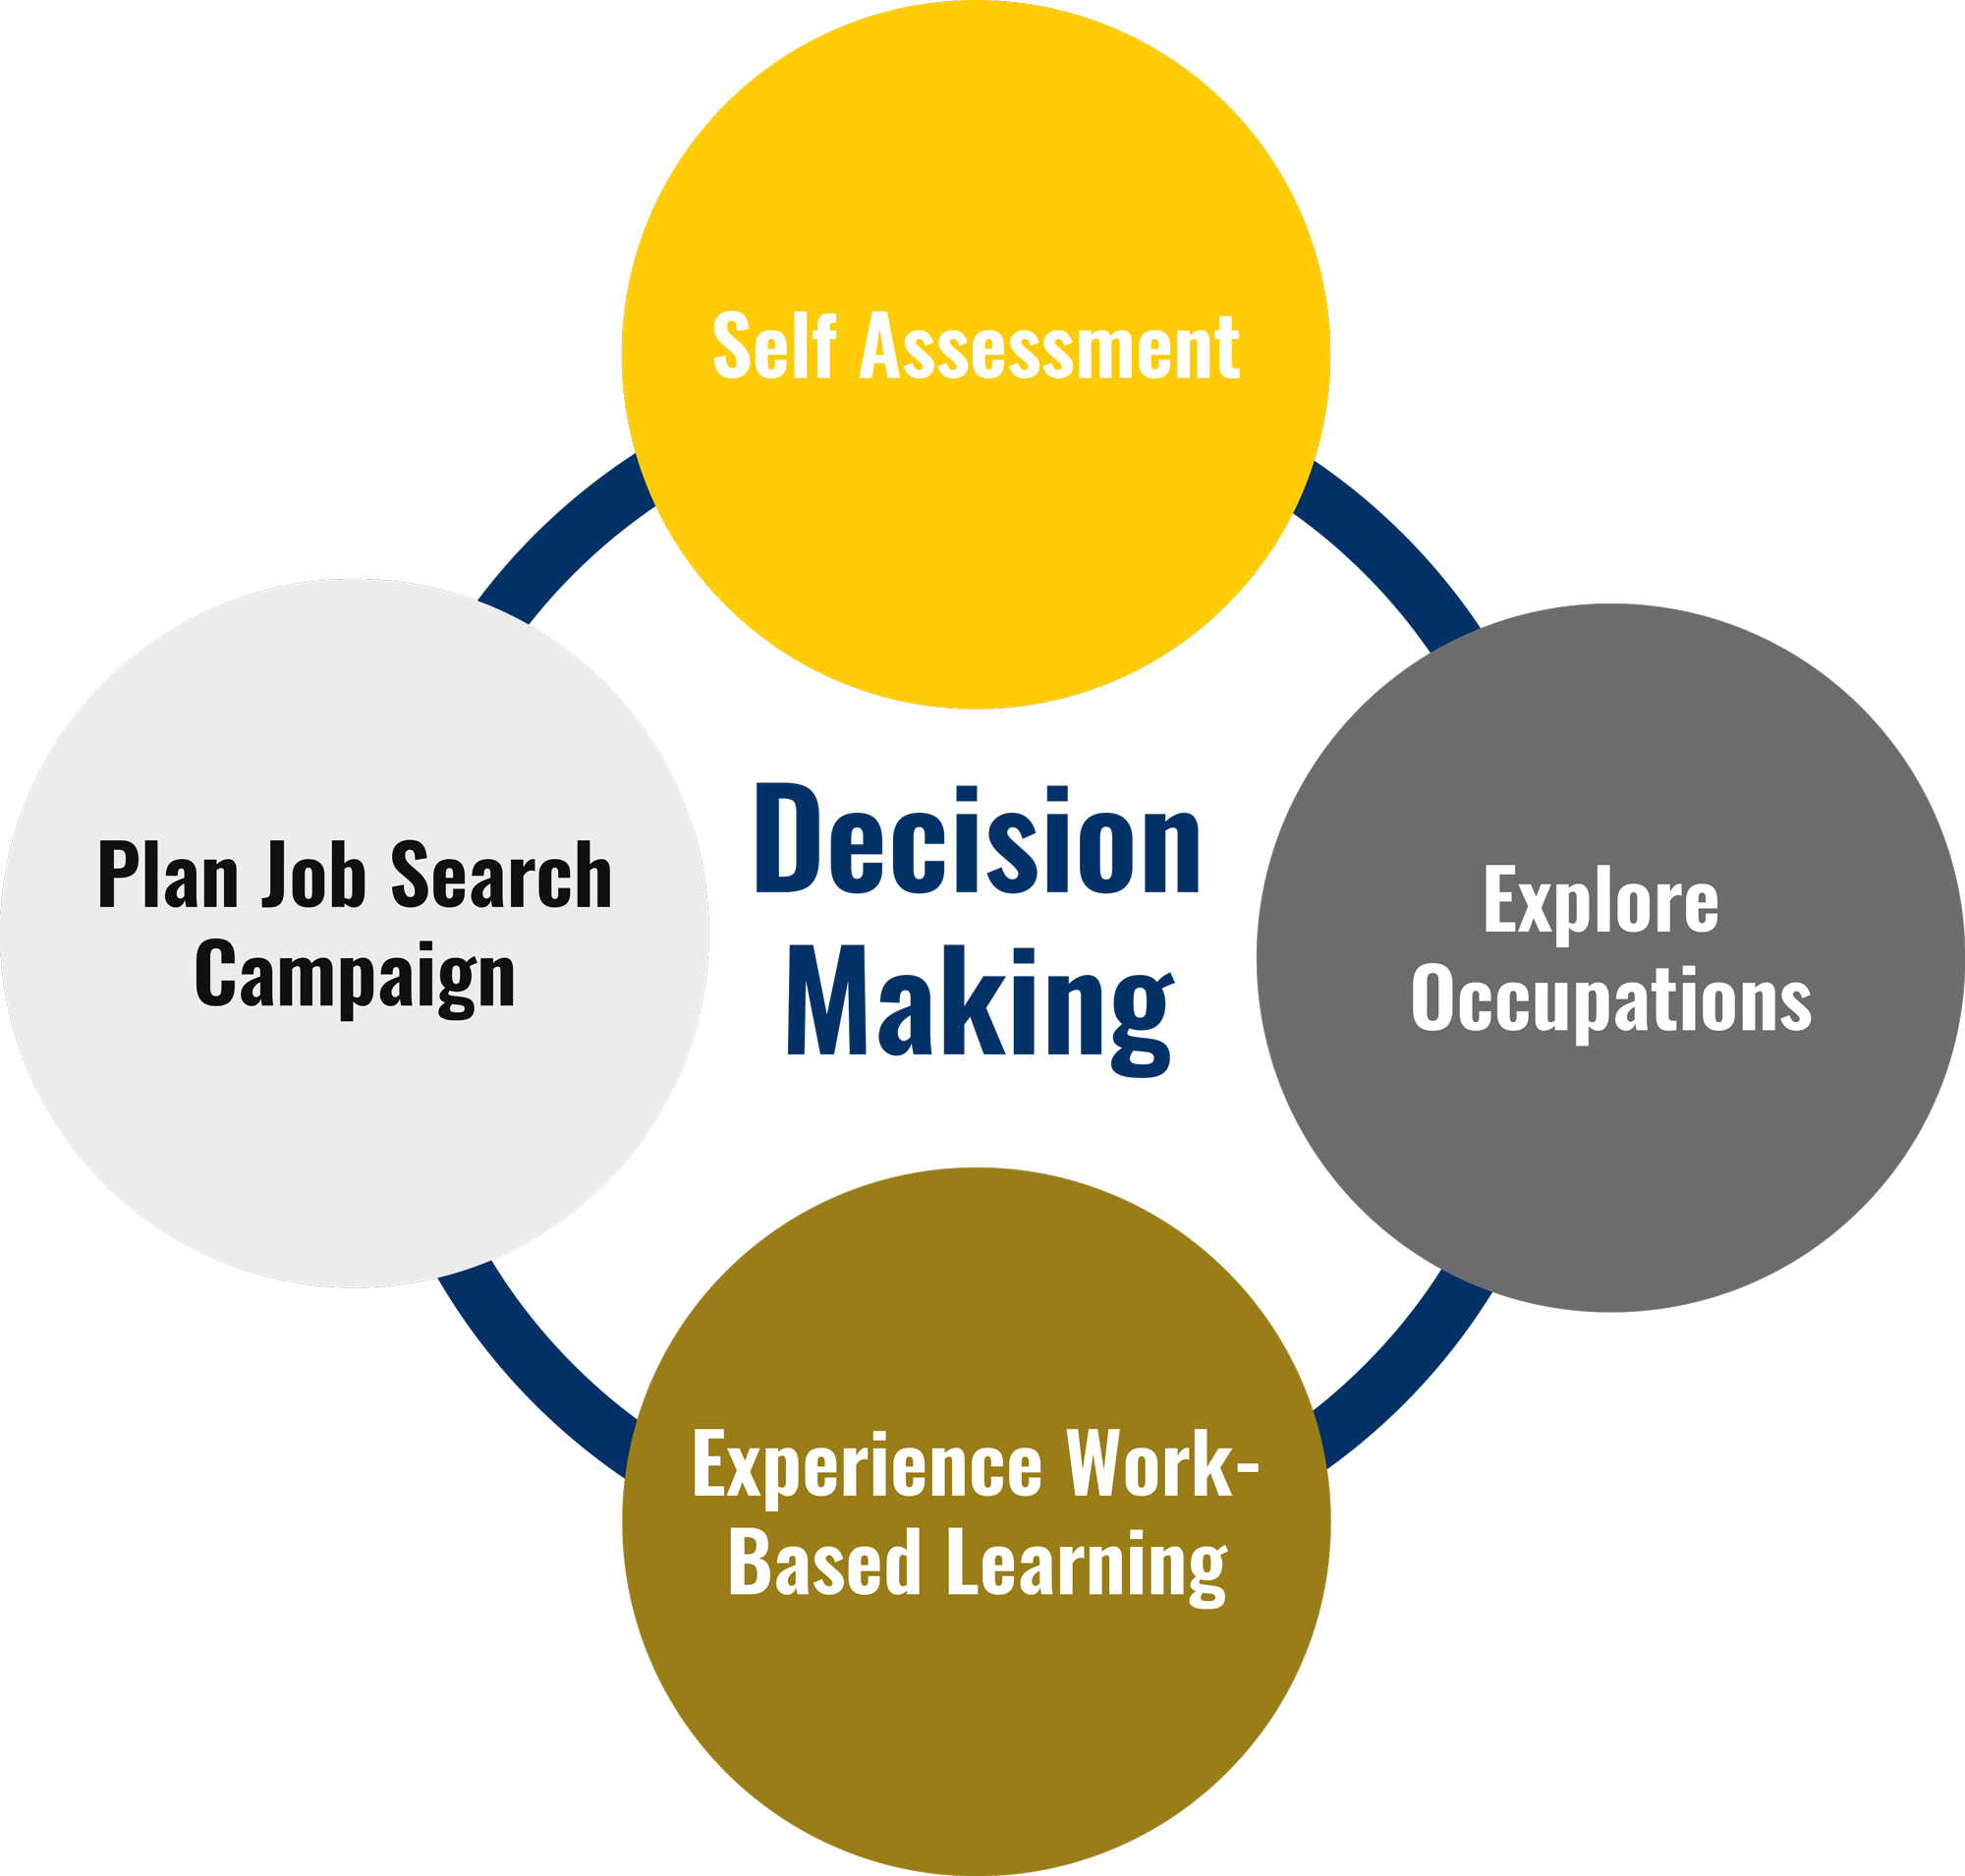 Career Planning Life Cycle includes Self Assessment, Explore Occupations, Experience Work-Based Learning and Plan Job Search.